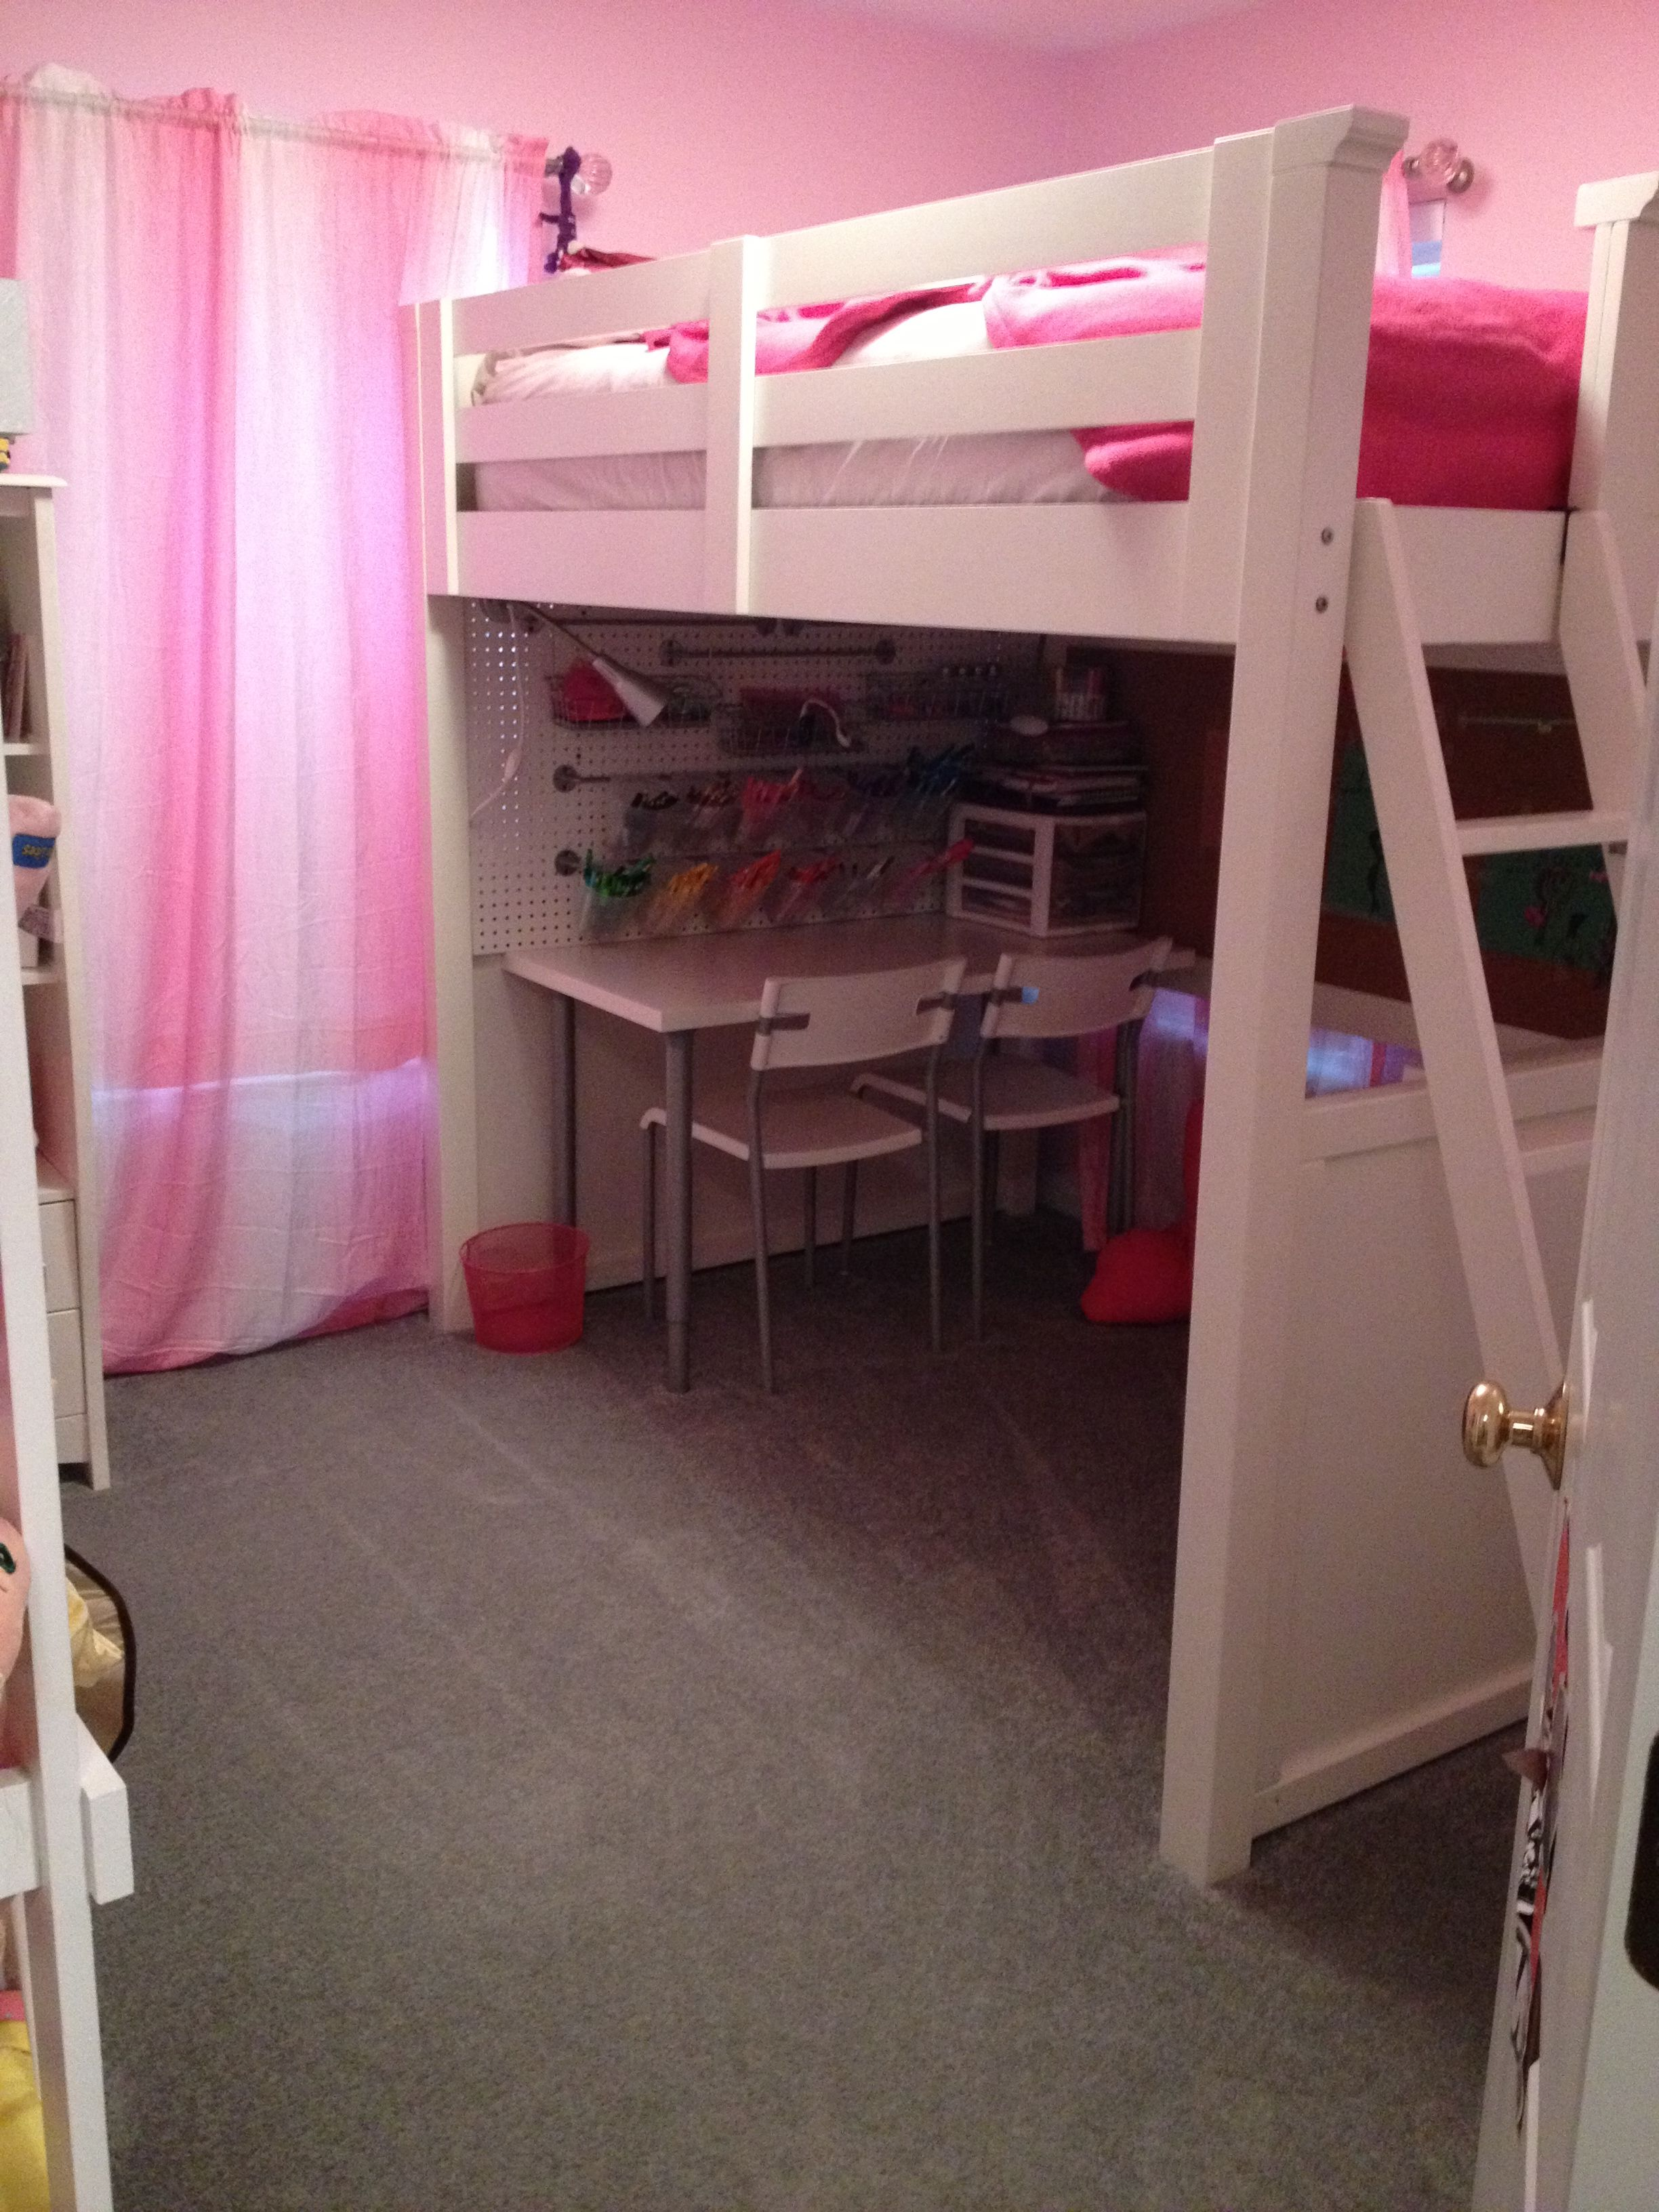 Beds For 10 Year Olds Small Space Solution! 5 Year Old Girl's Bedroom Complete